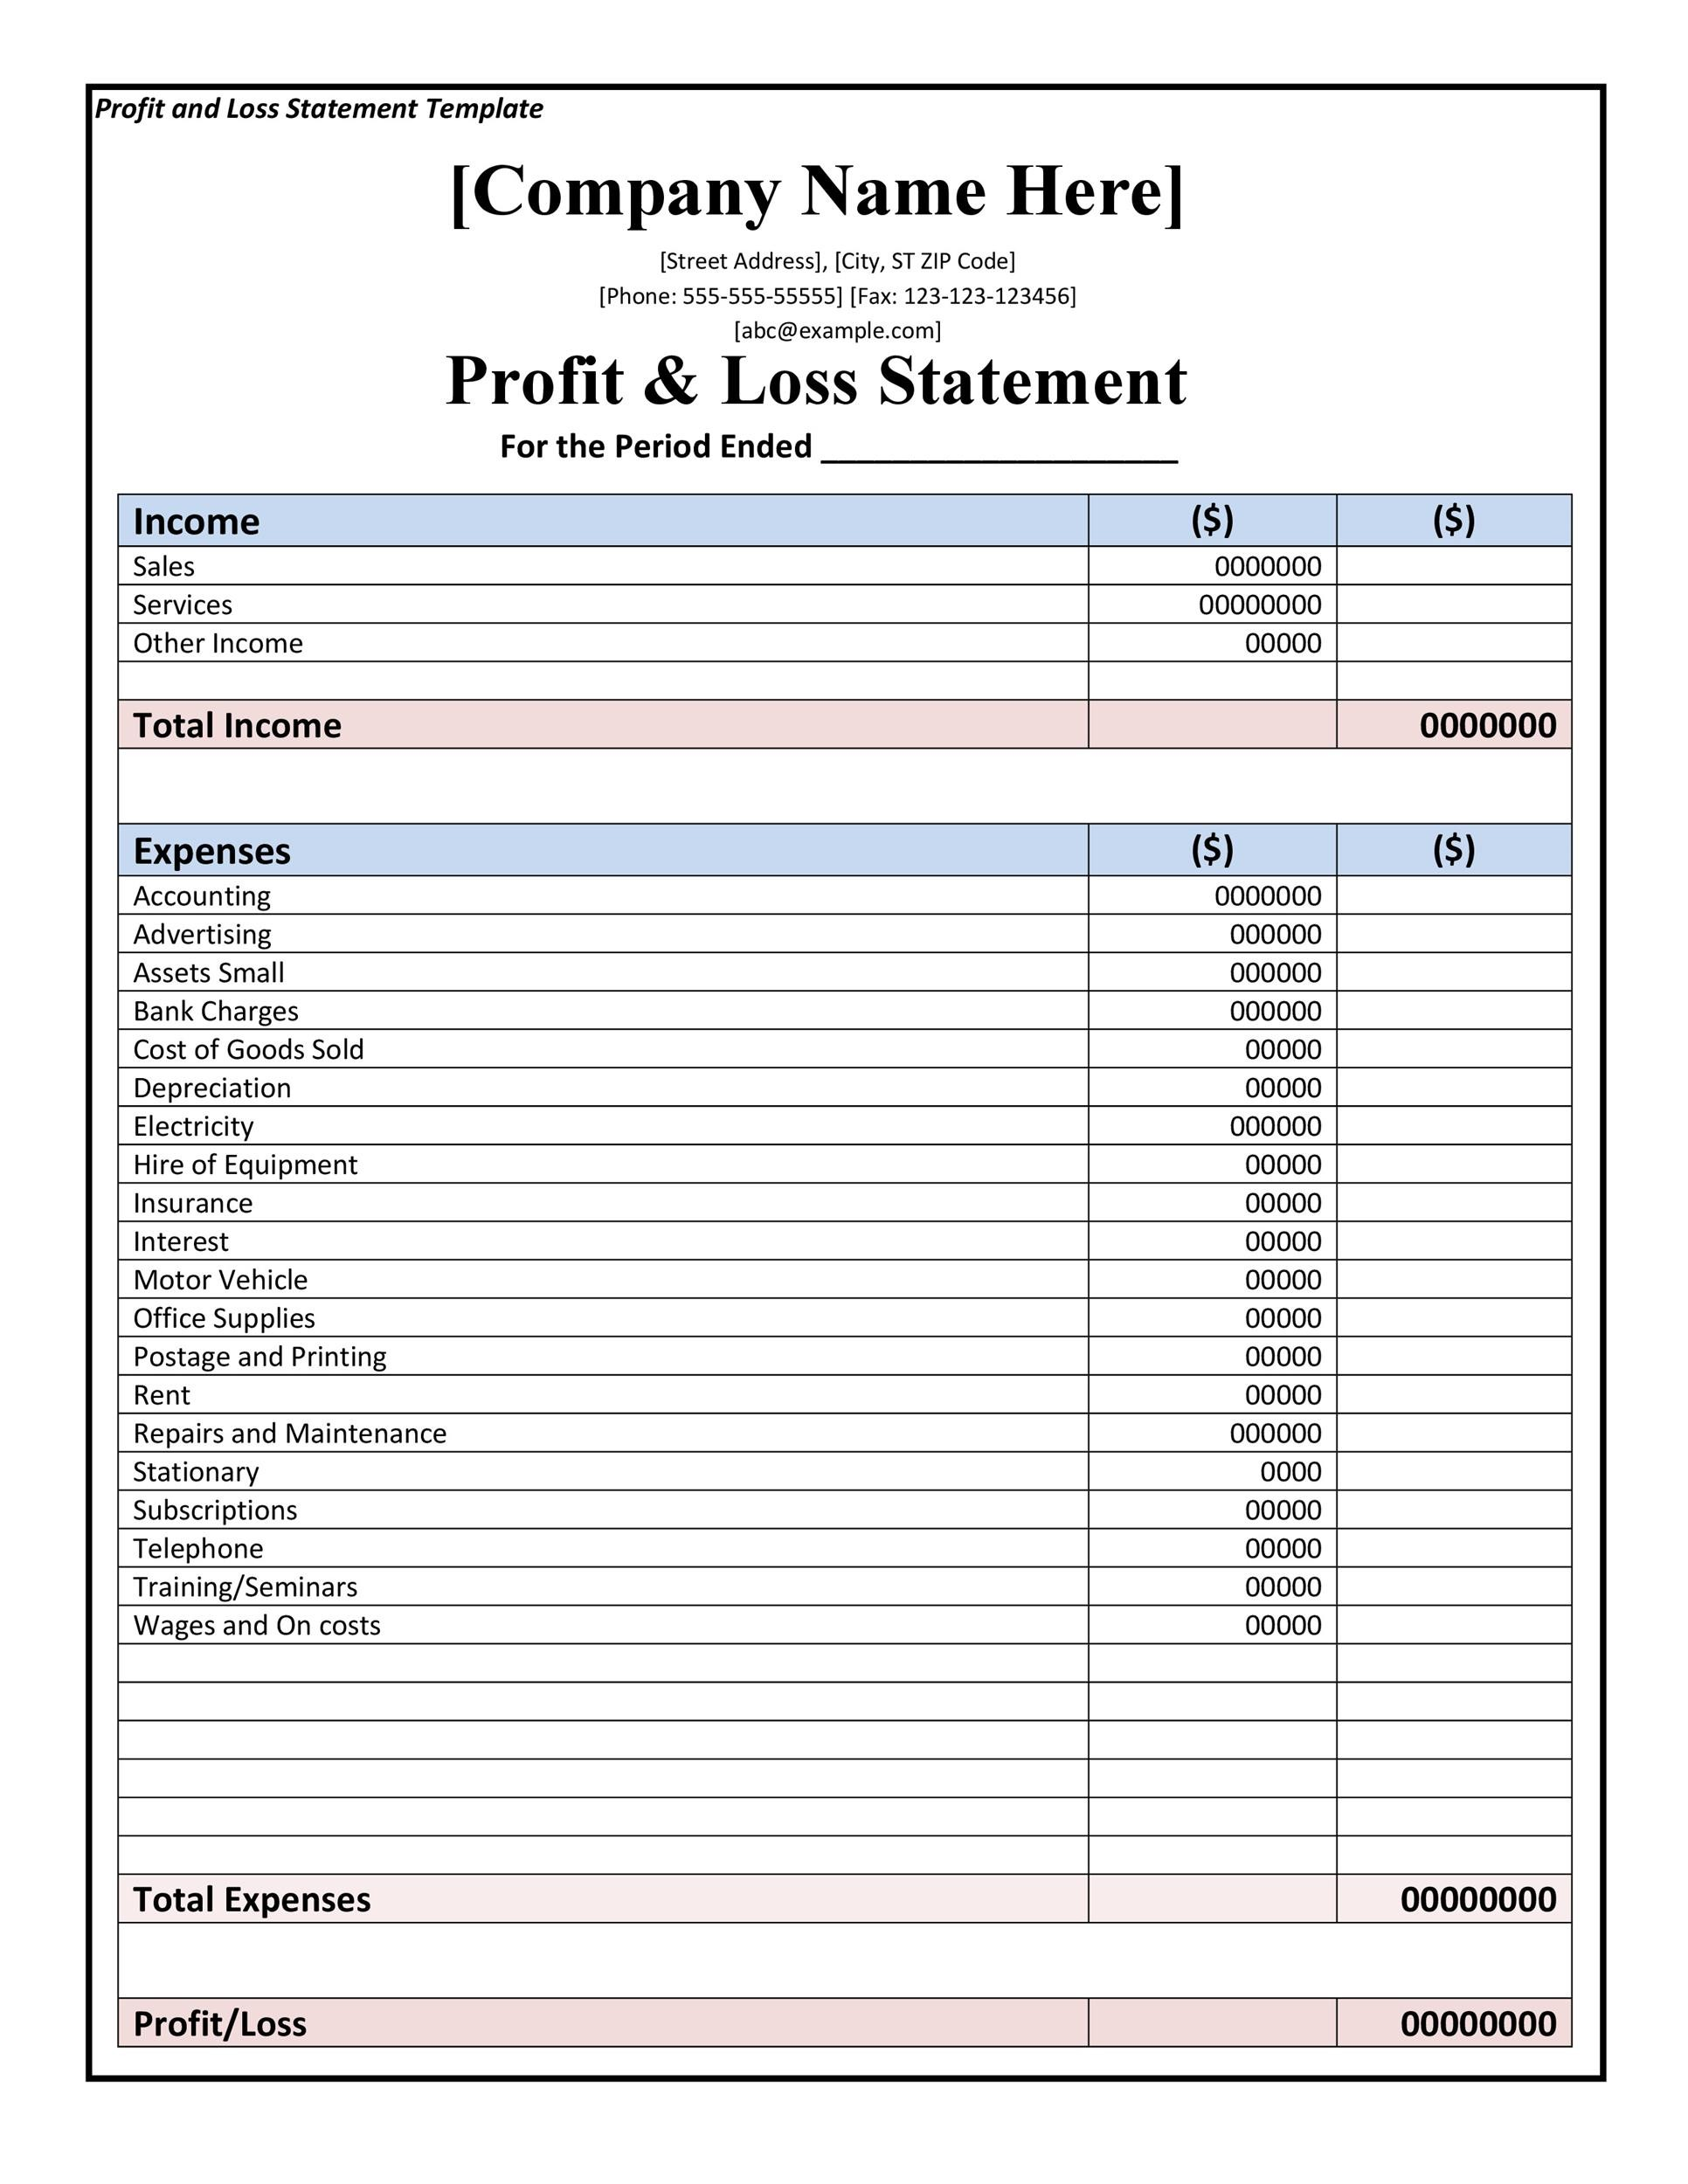 Free Profit And Loss Statement Template